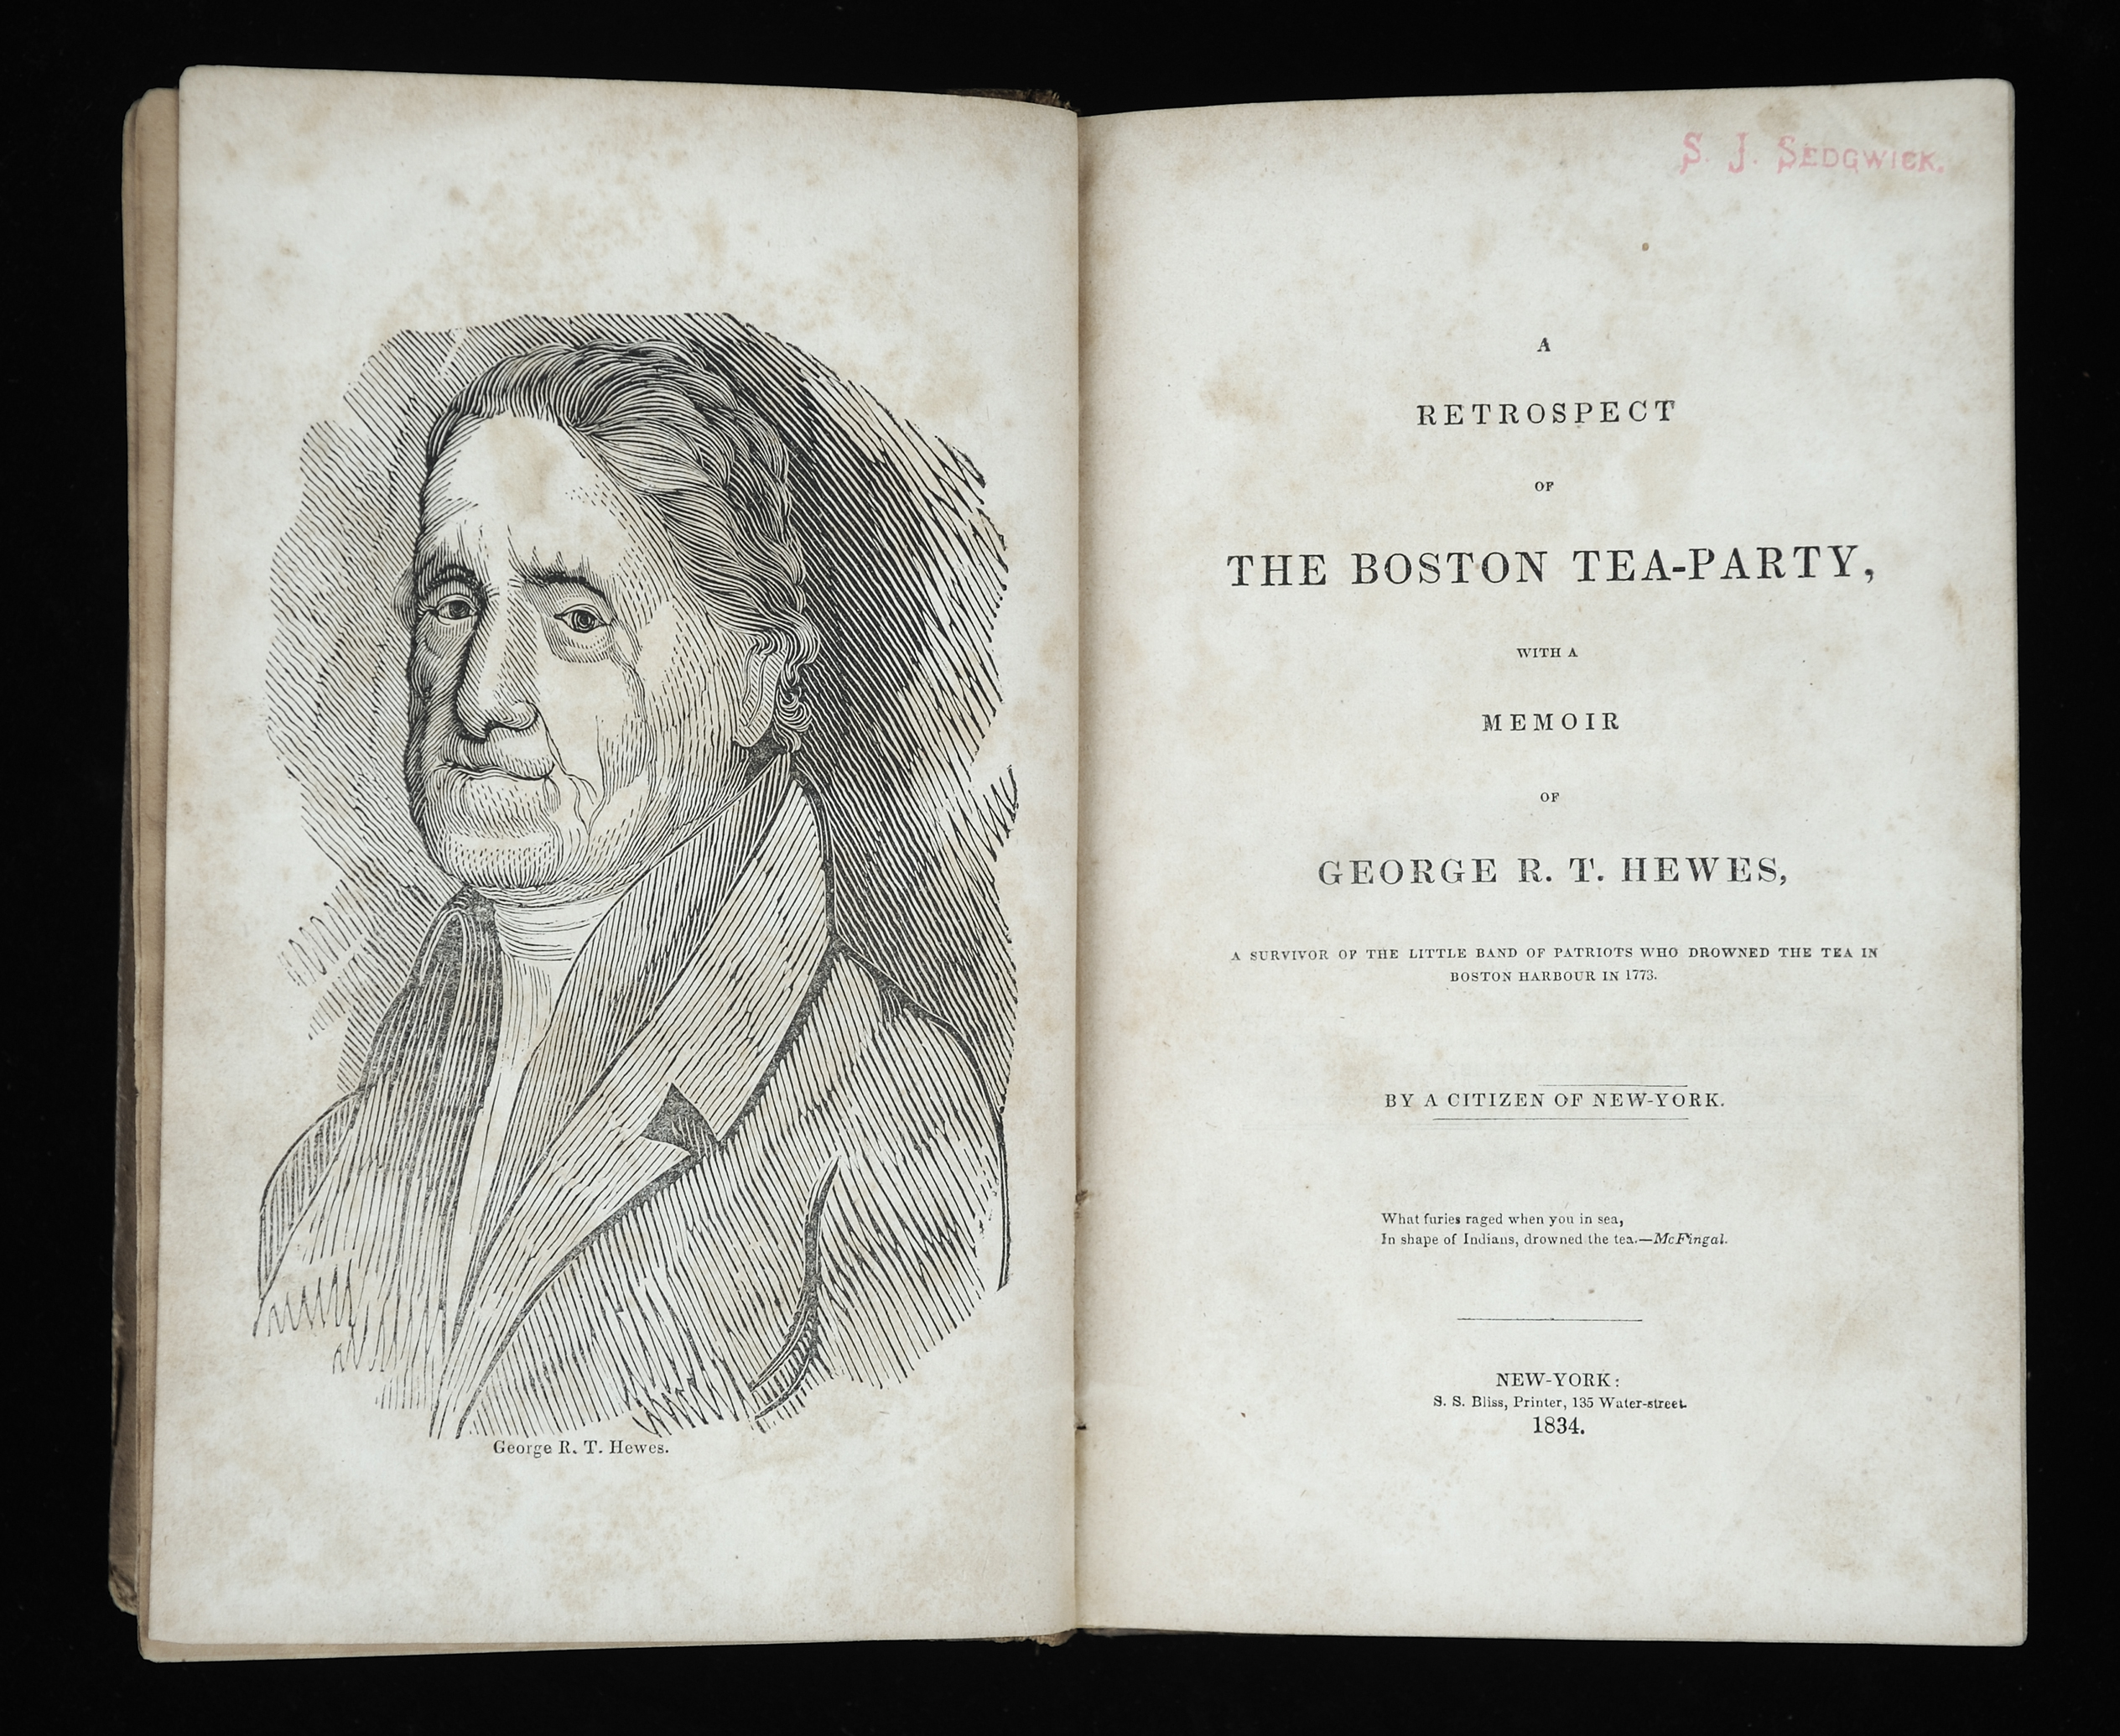 A Retrospect of the Boston Tea-Party, with a Memoir of George R.T. Hewes, 1834